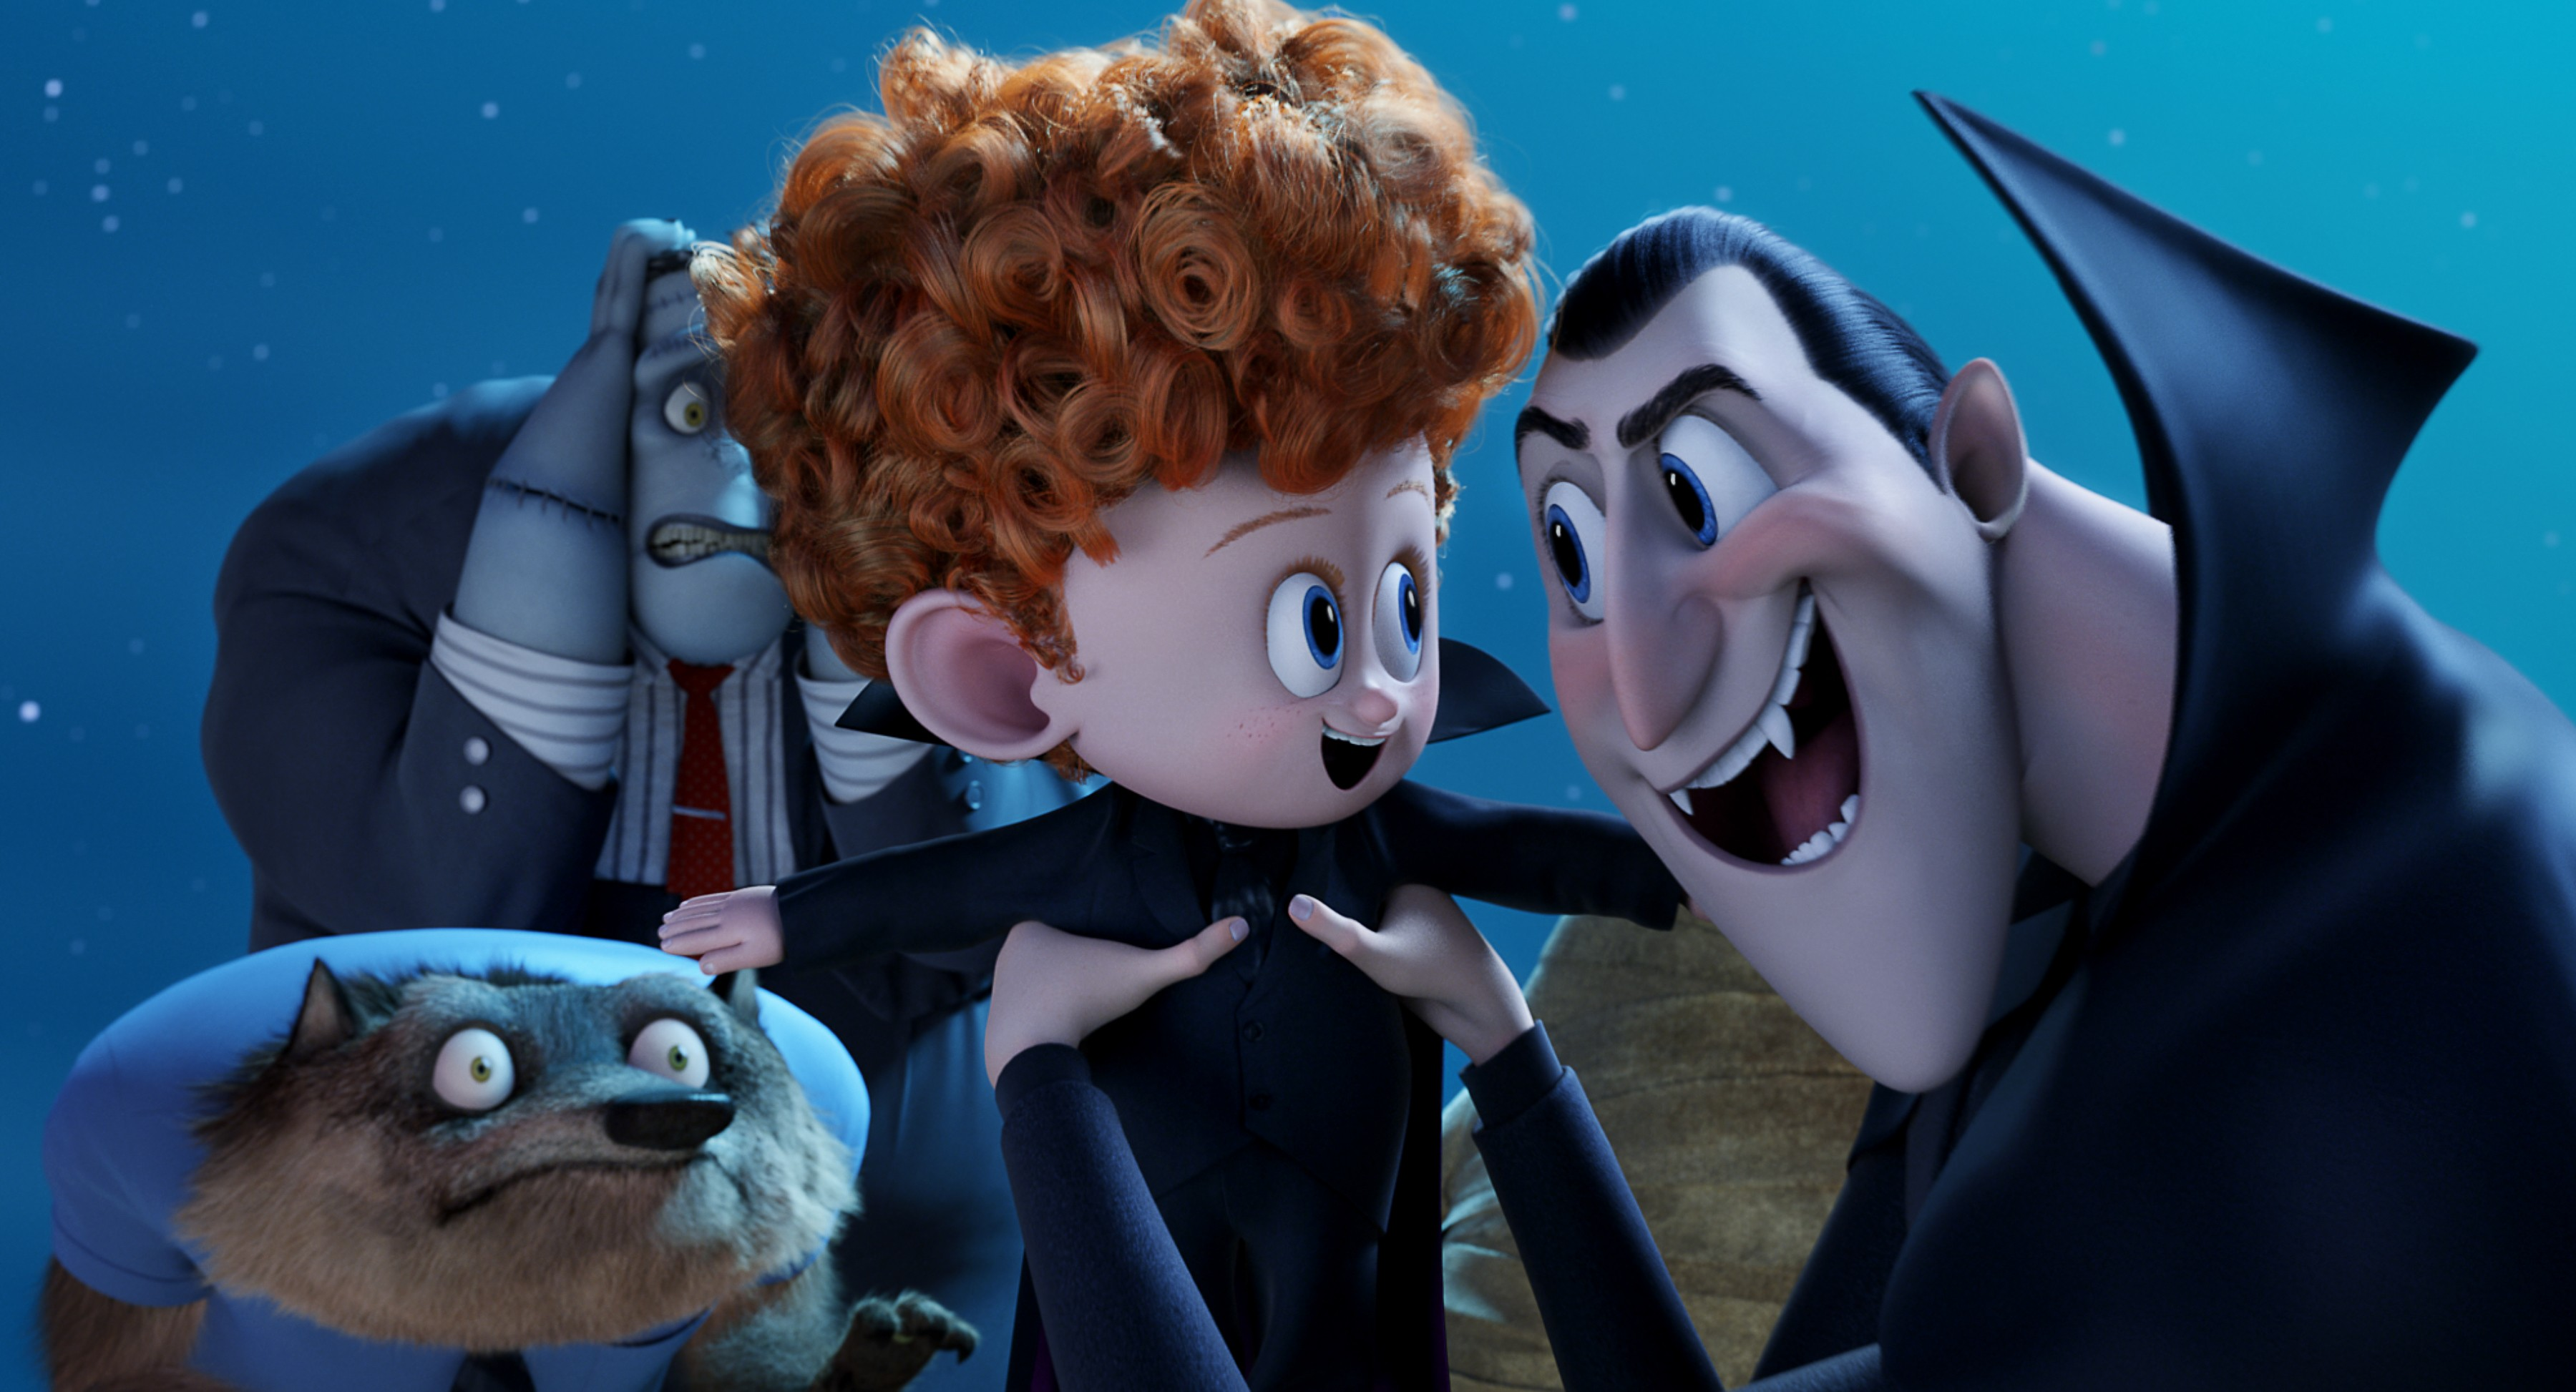 Dennis (Asher Blinkoff) and Dracula (Adam Sandler) with Wayne (Steve Buscemi) and Frank (Kevin James) looking on in Columbia Pictures and Sony Pictures Animations' HOTEL TRANSYLVANIA 2.